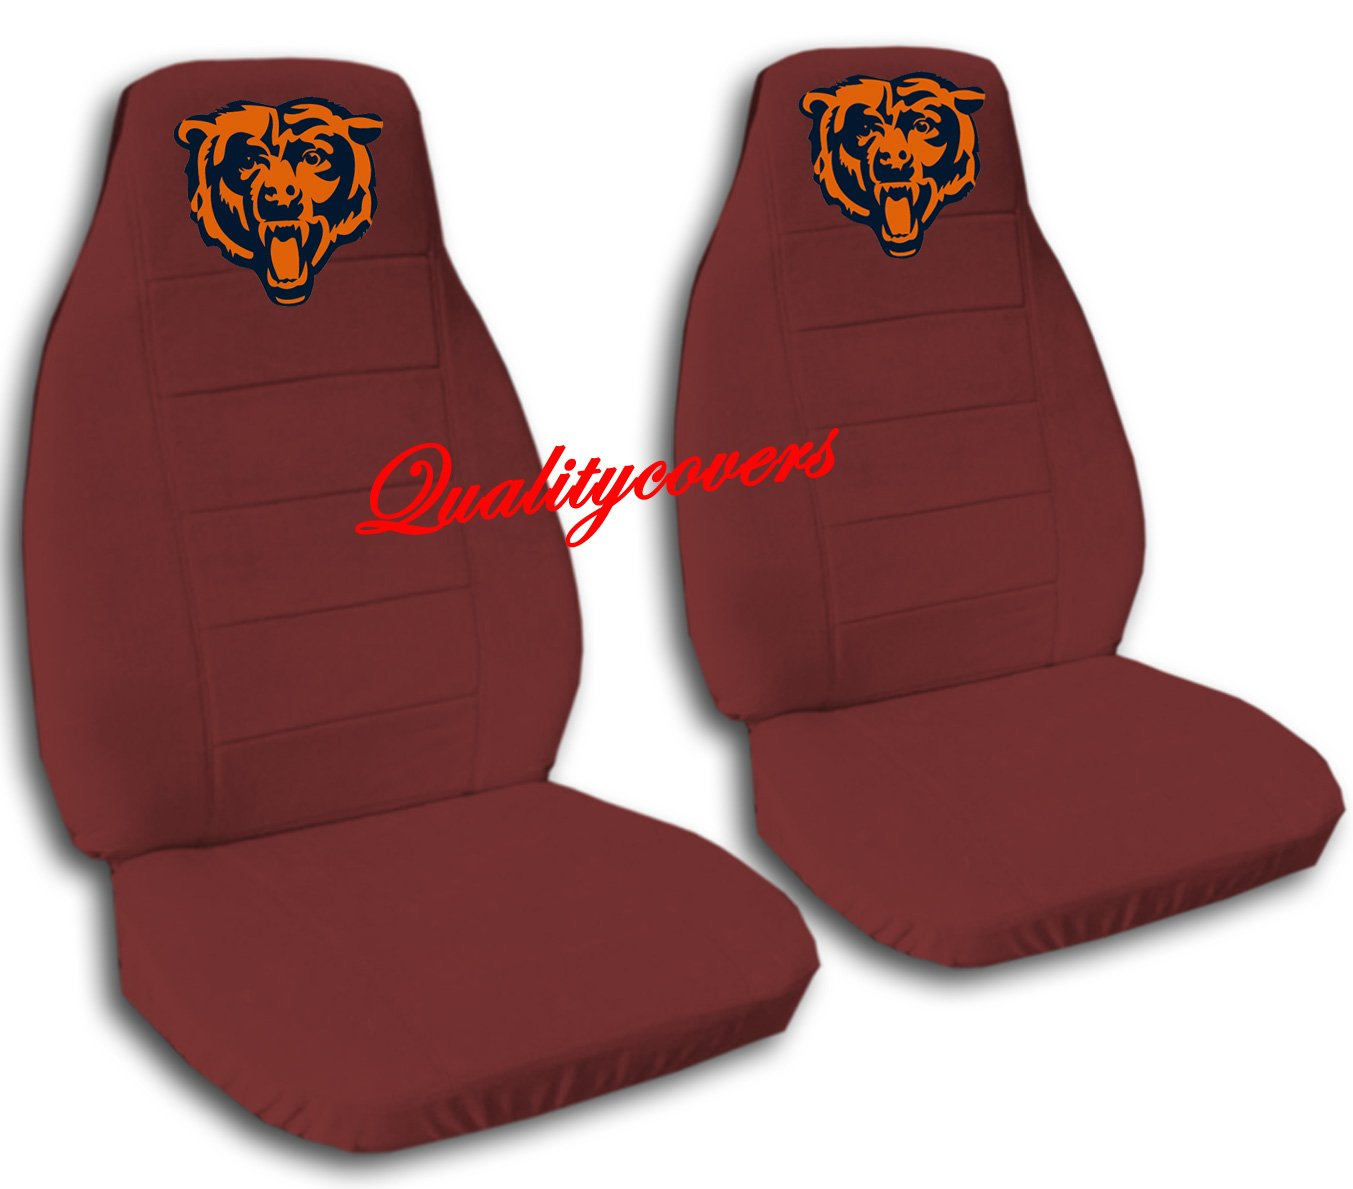 2 Burgundy Chicago seat covers for a 2007 to 2012 Chevrolet Silverado. Side airbag friendly.